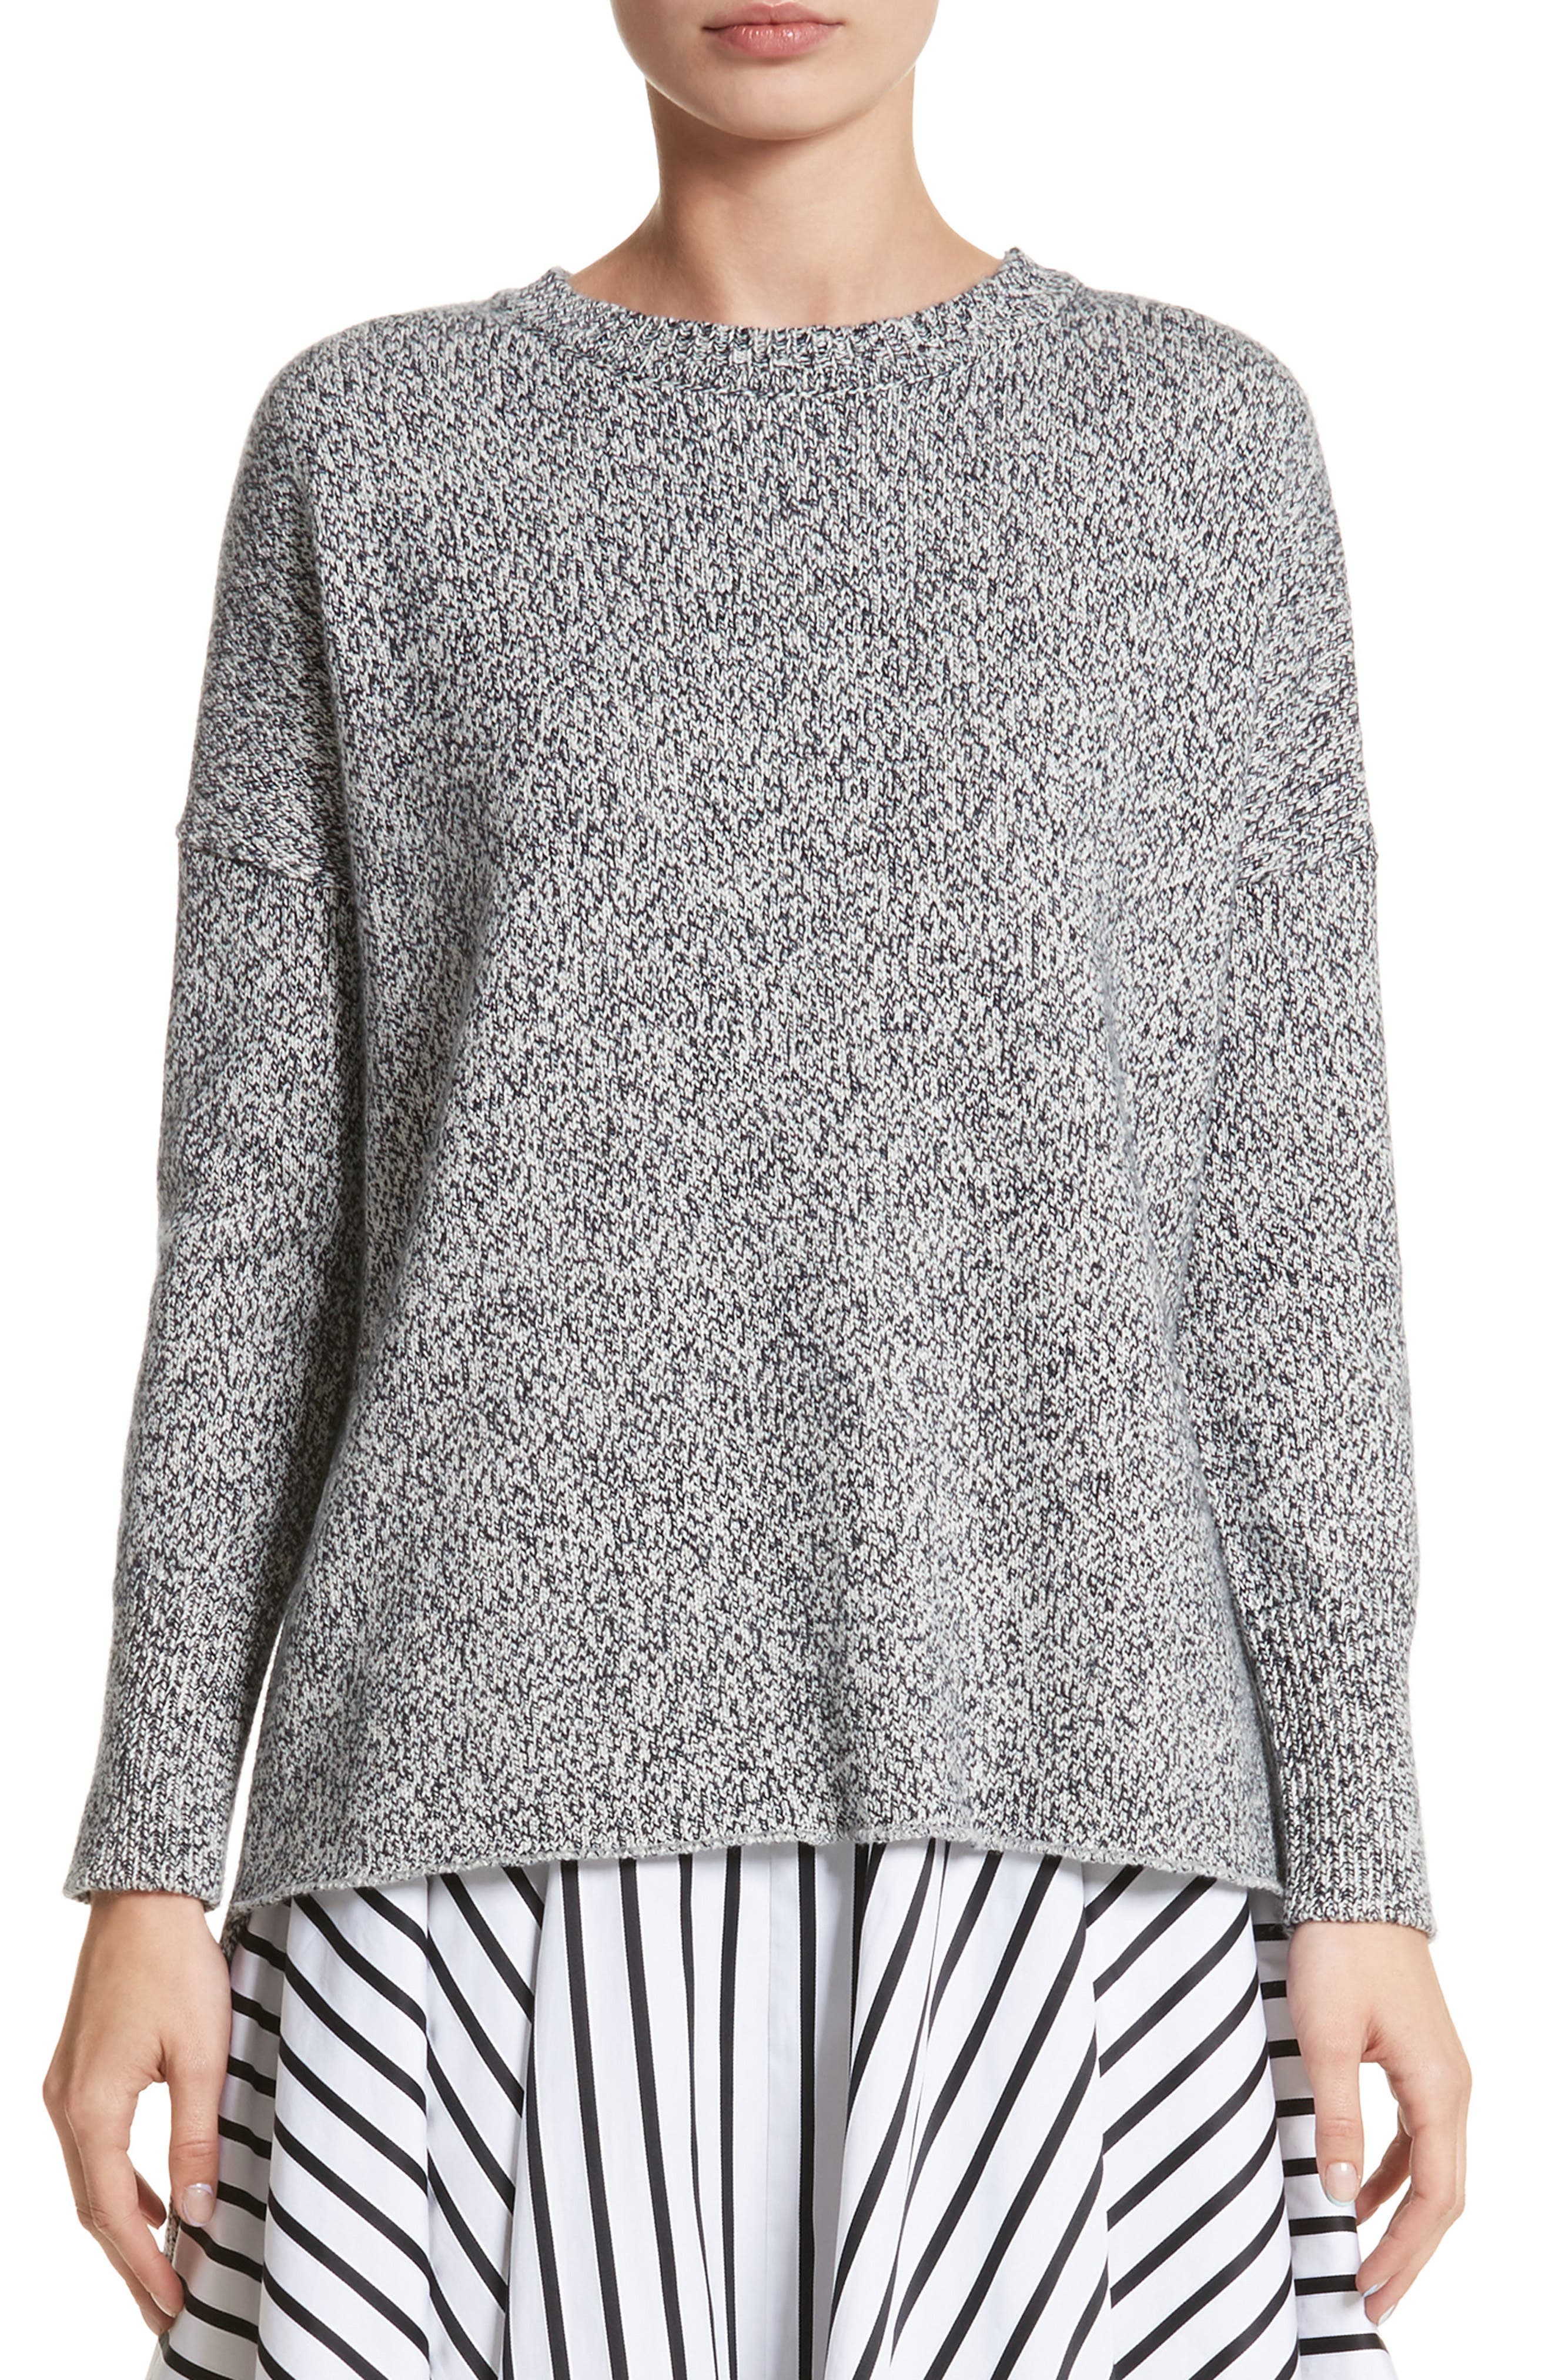 Main Image - Adam Lippes Marled Cotton, Cashmere & Silk Sweater